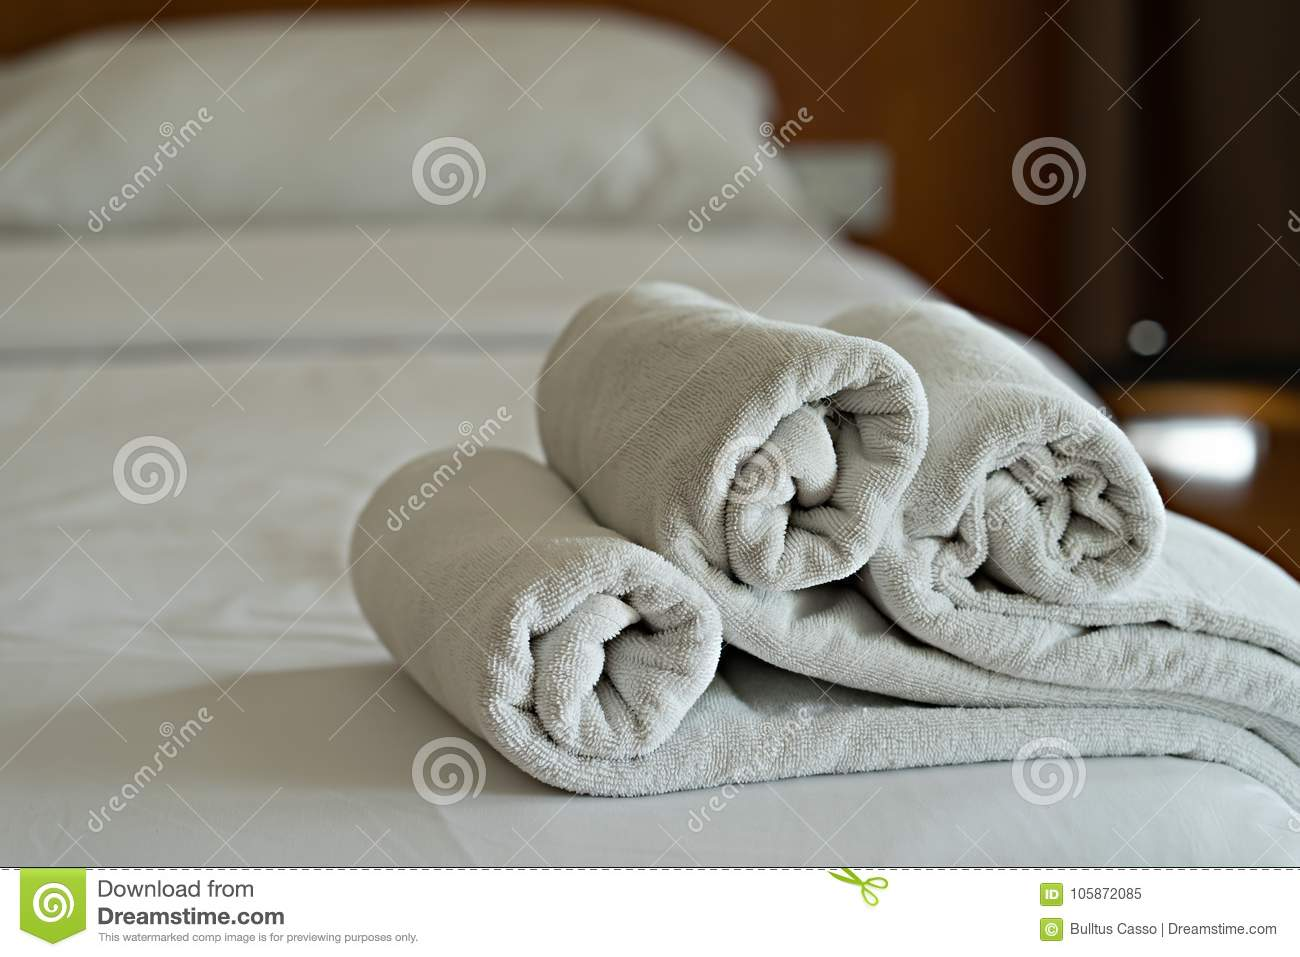 White Towels Roll On Bed In Hotel Bedroom Stock Image Image Of Decoration Business 105872085